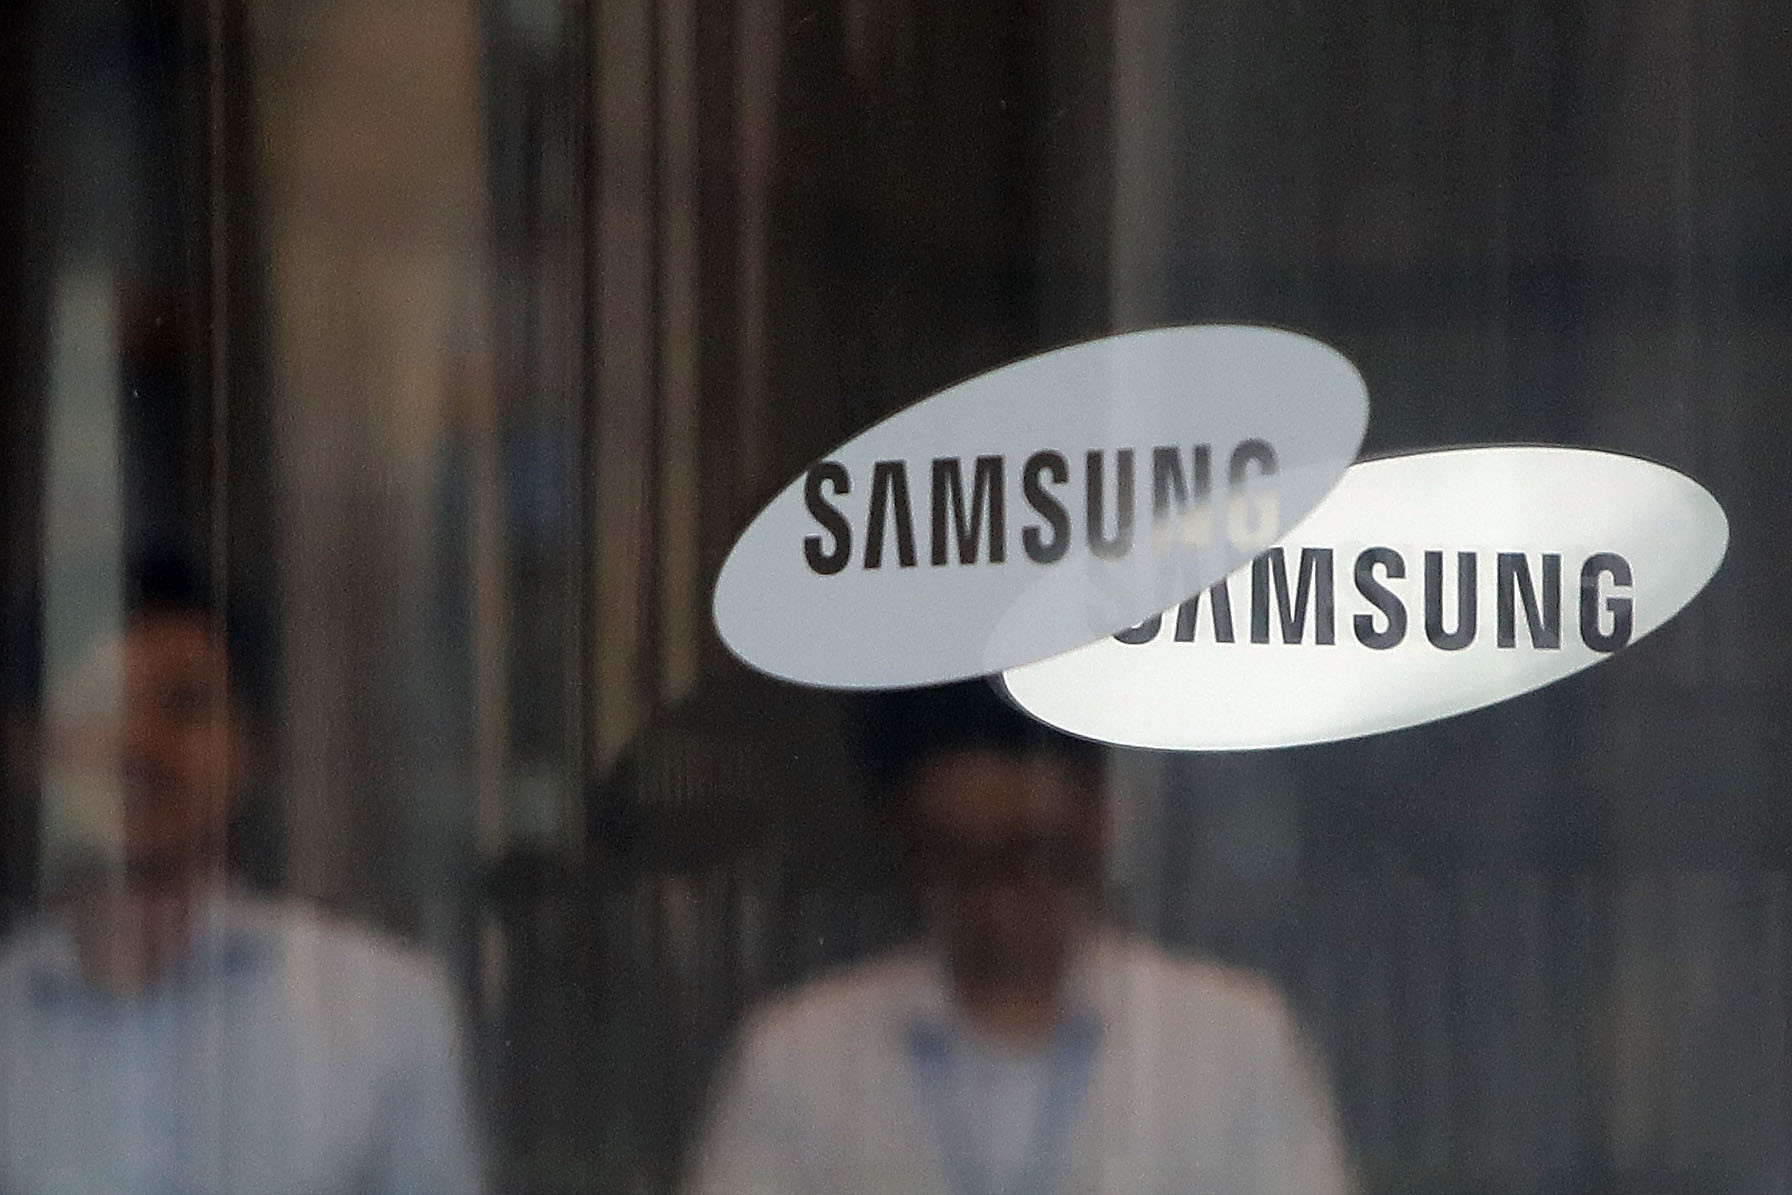 IOC sponsor Samsung showing resilience in face of pandemic